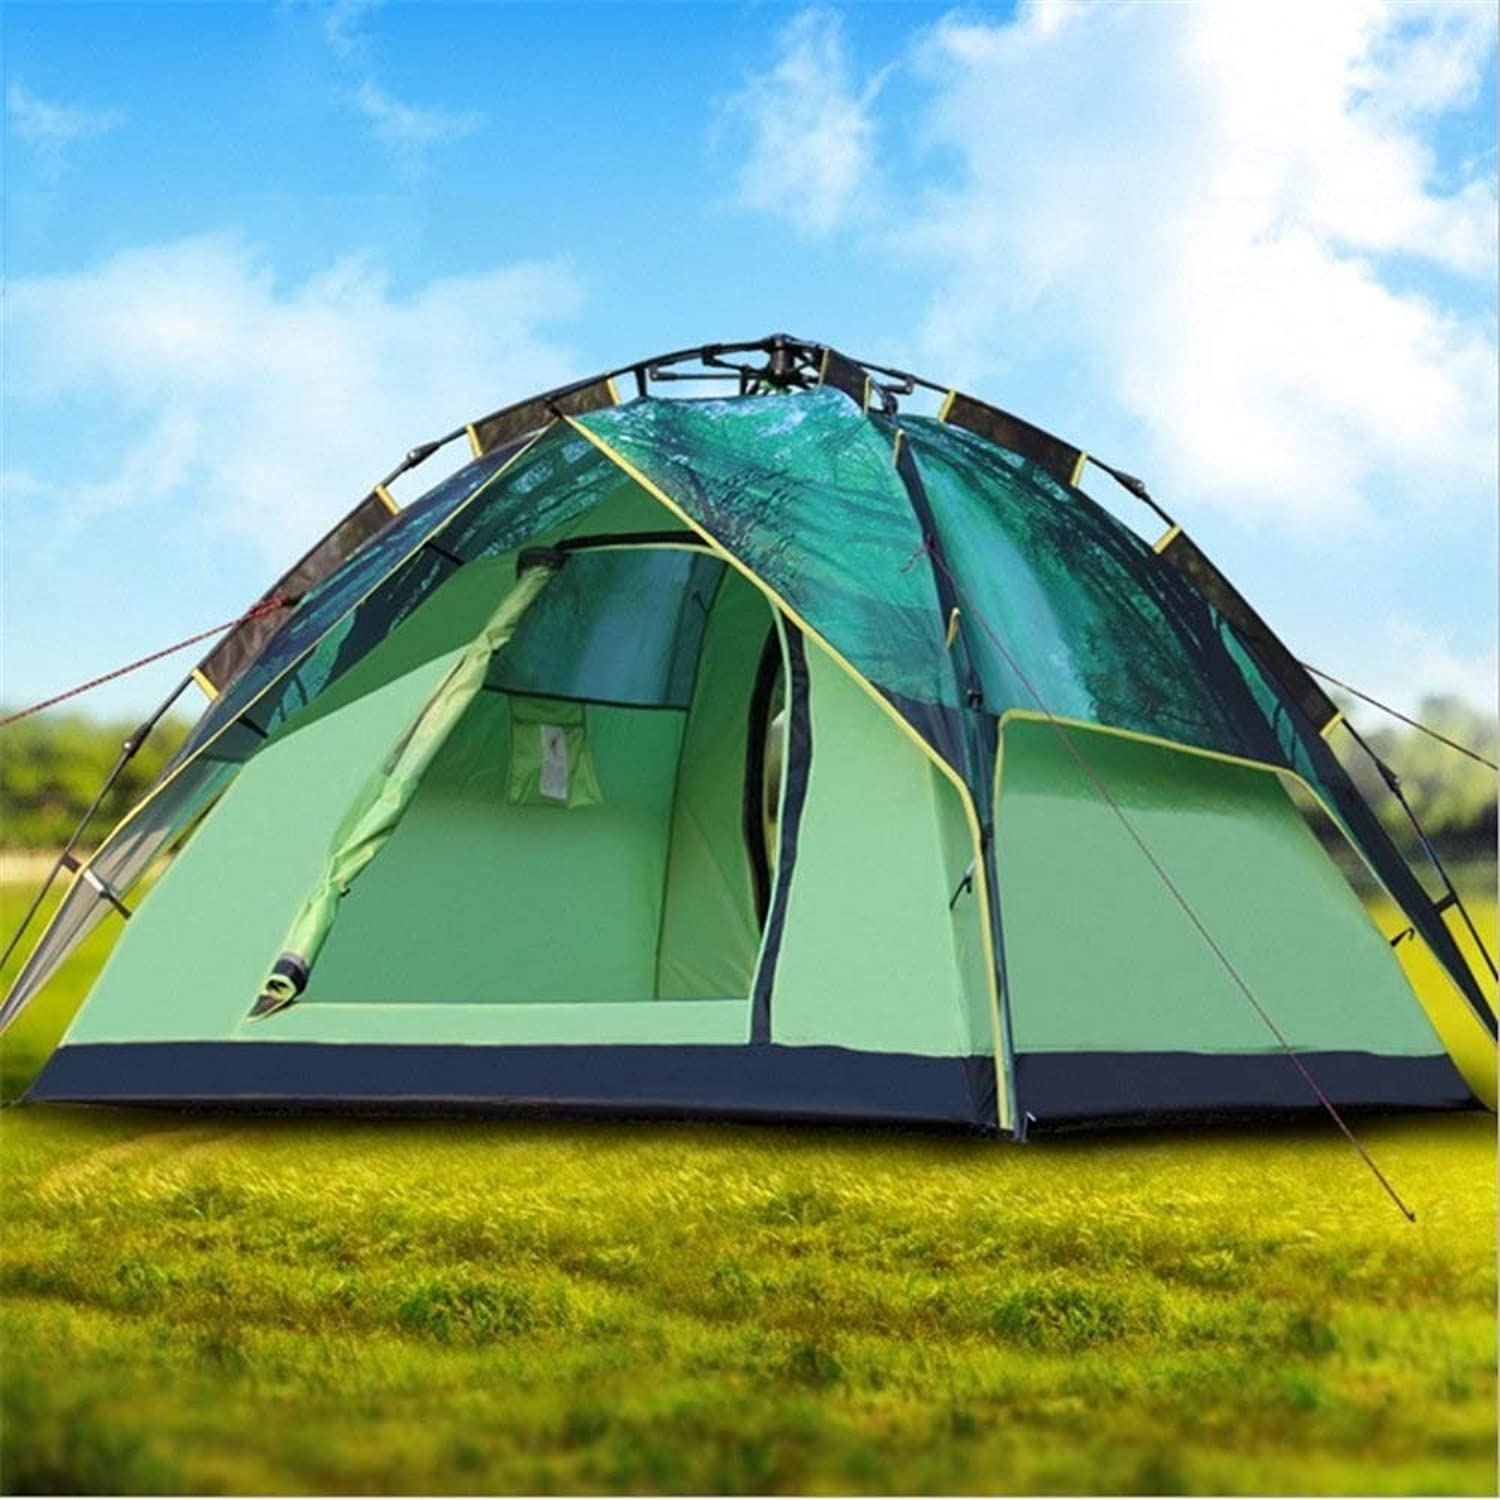 Outdoor Camping Tent 34 People DoubleLayer UltraLight Portable Sunscreen Waterproof Family Friends Fishing Travel Beach Picnic Park Lawn